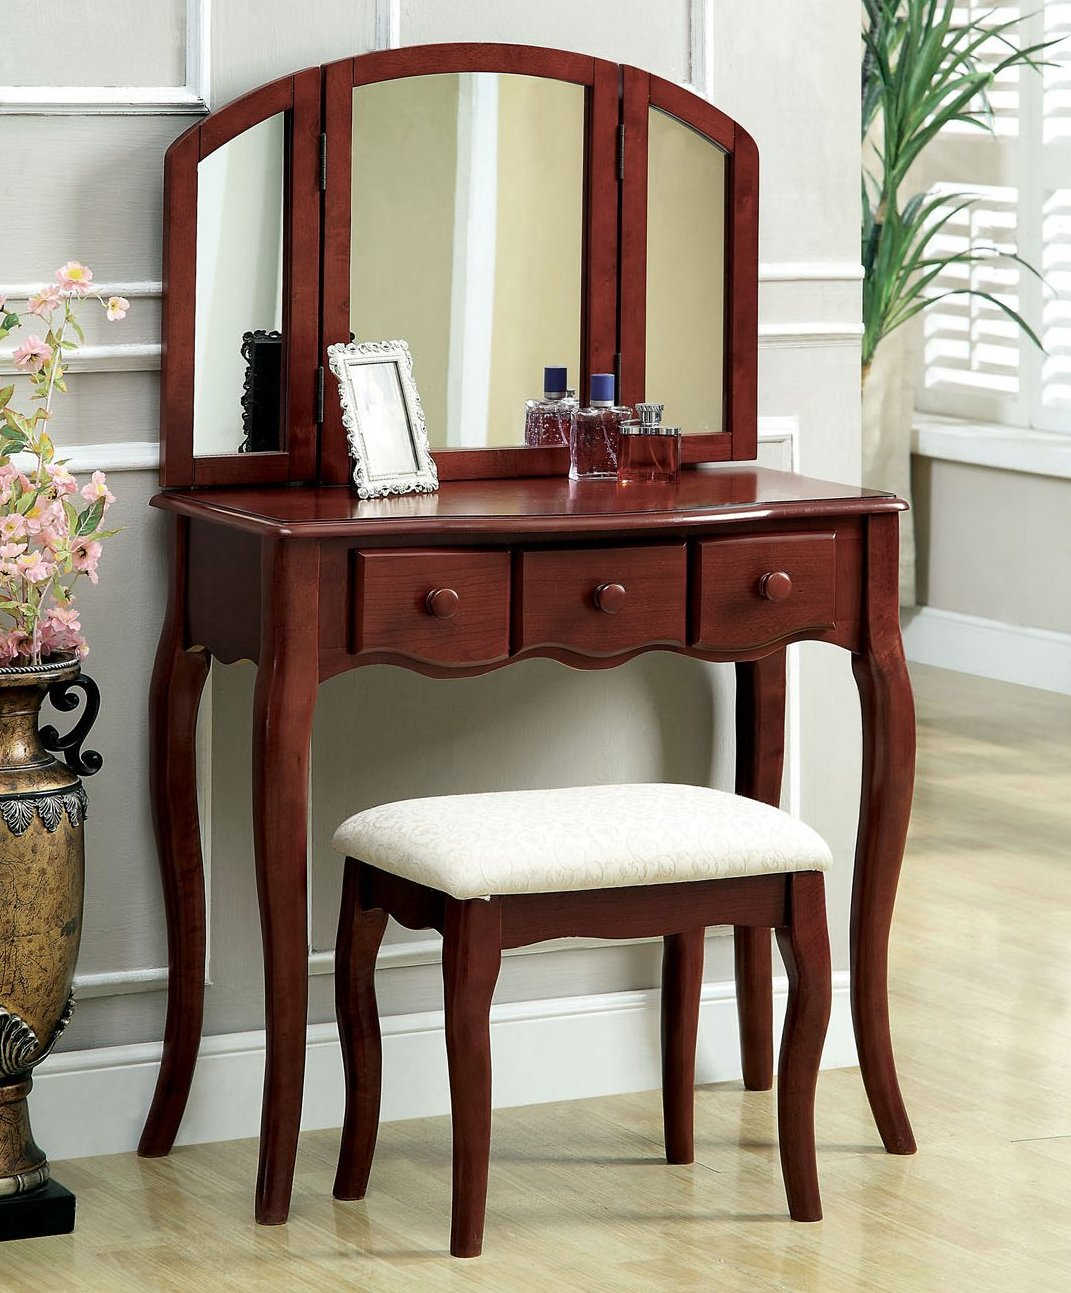 Elegant Vanity Chair And Stool That You Must Have Homesfeed